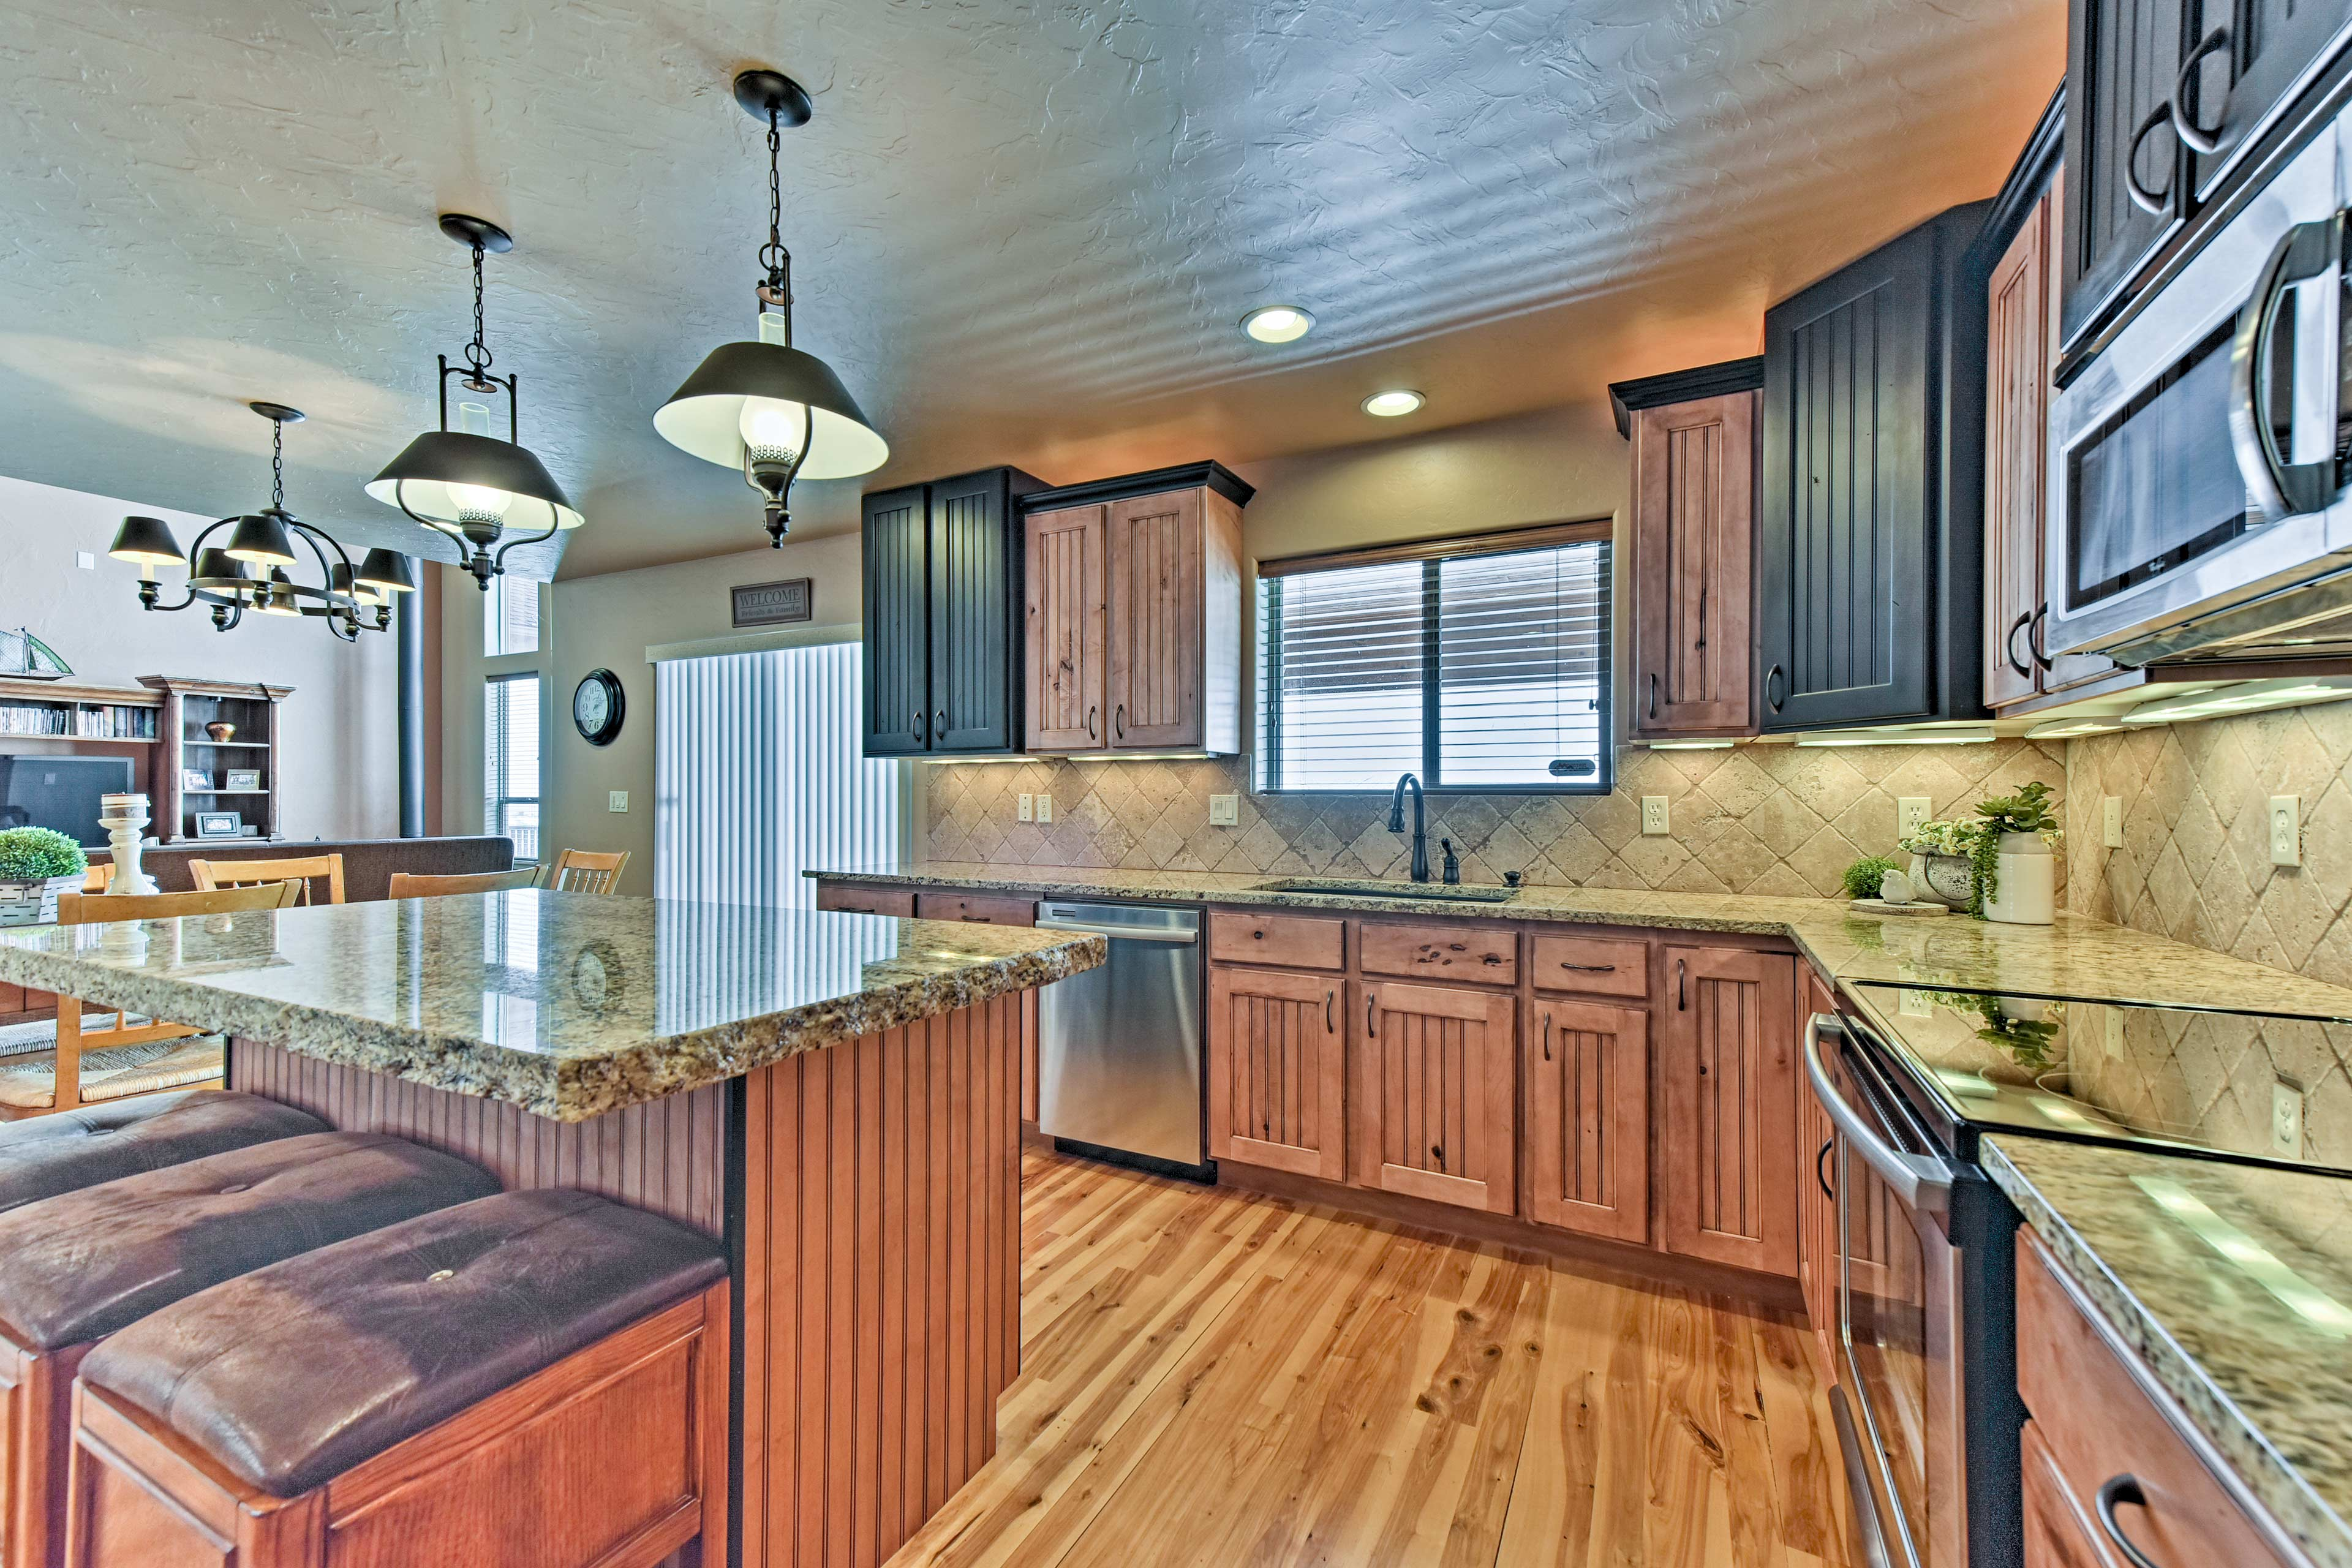 The kitchen boasts stainless steel appliances and granite countertops.